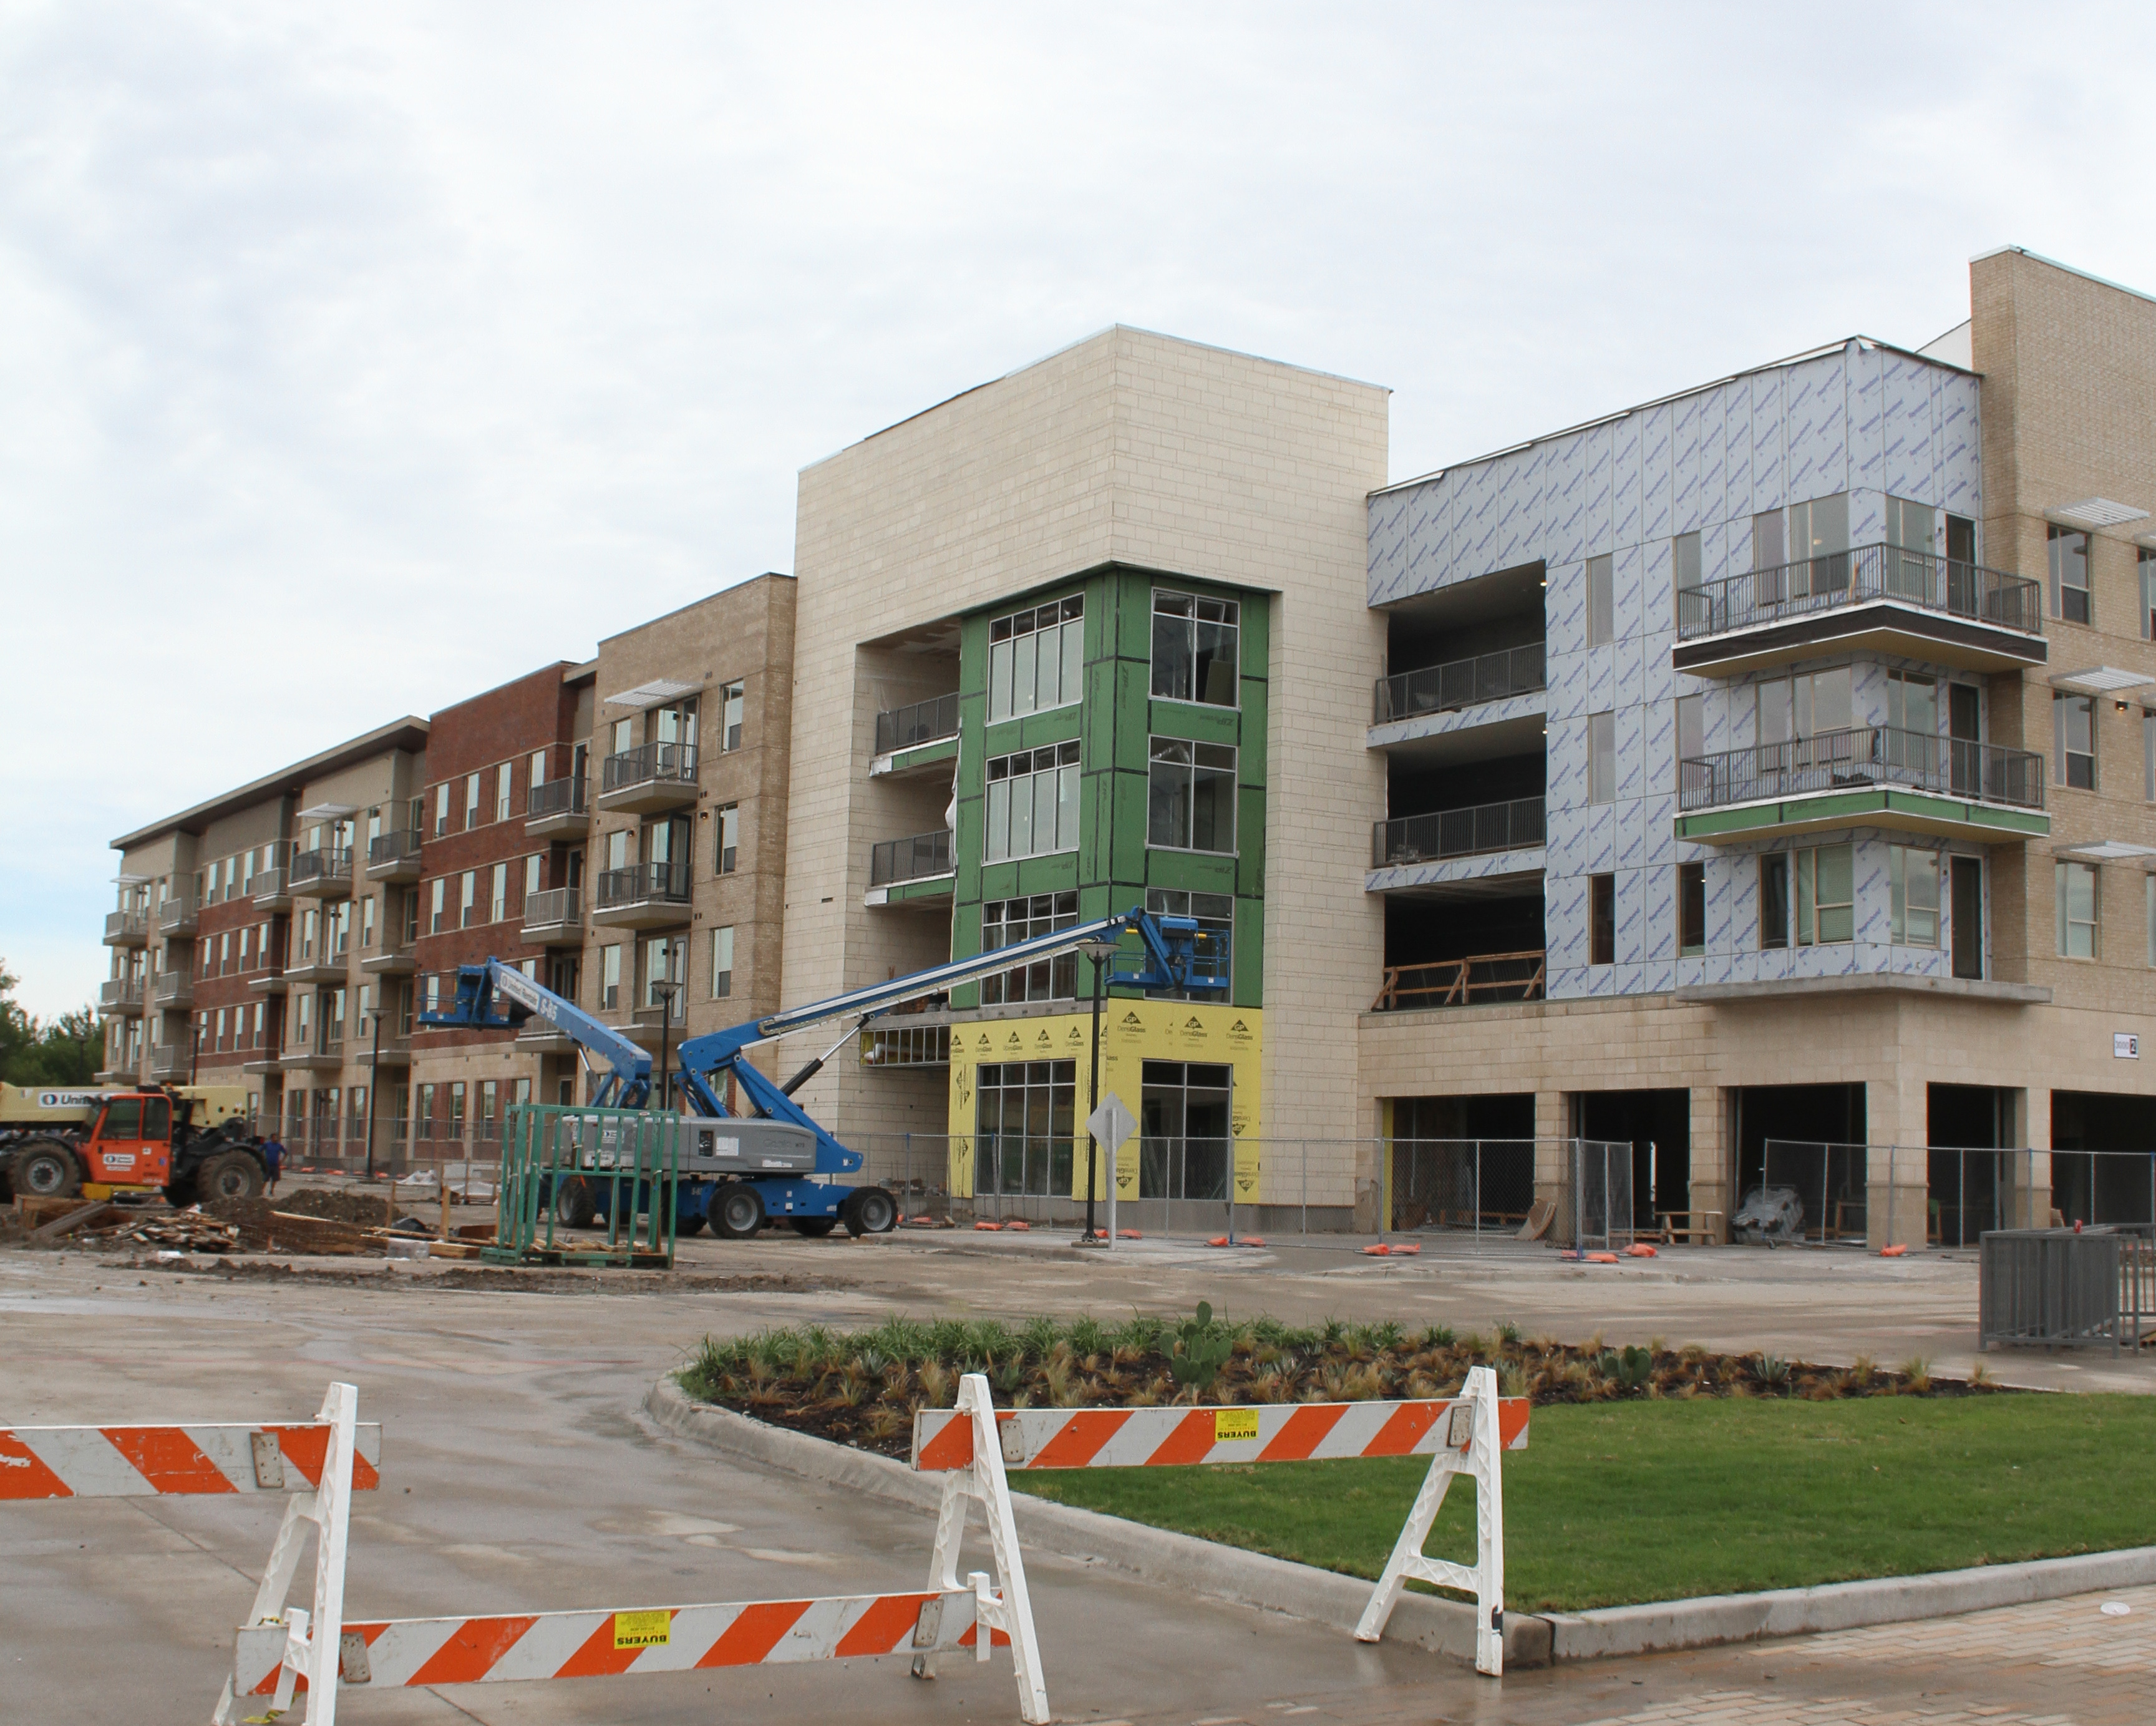 Northside move in delayed